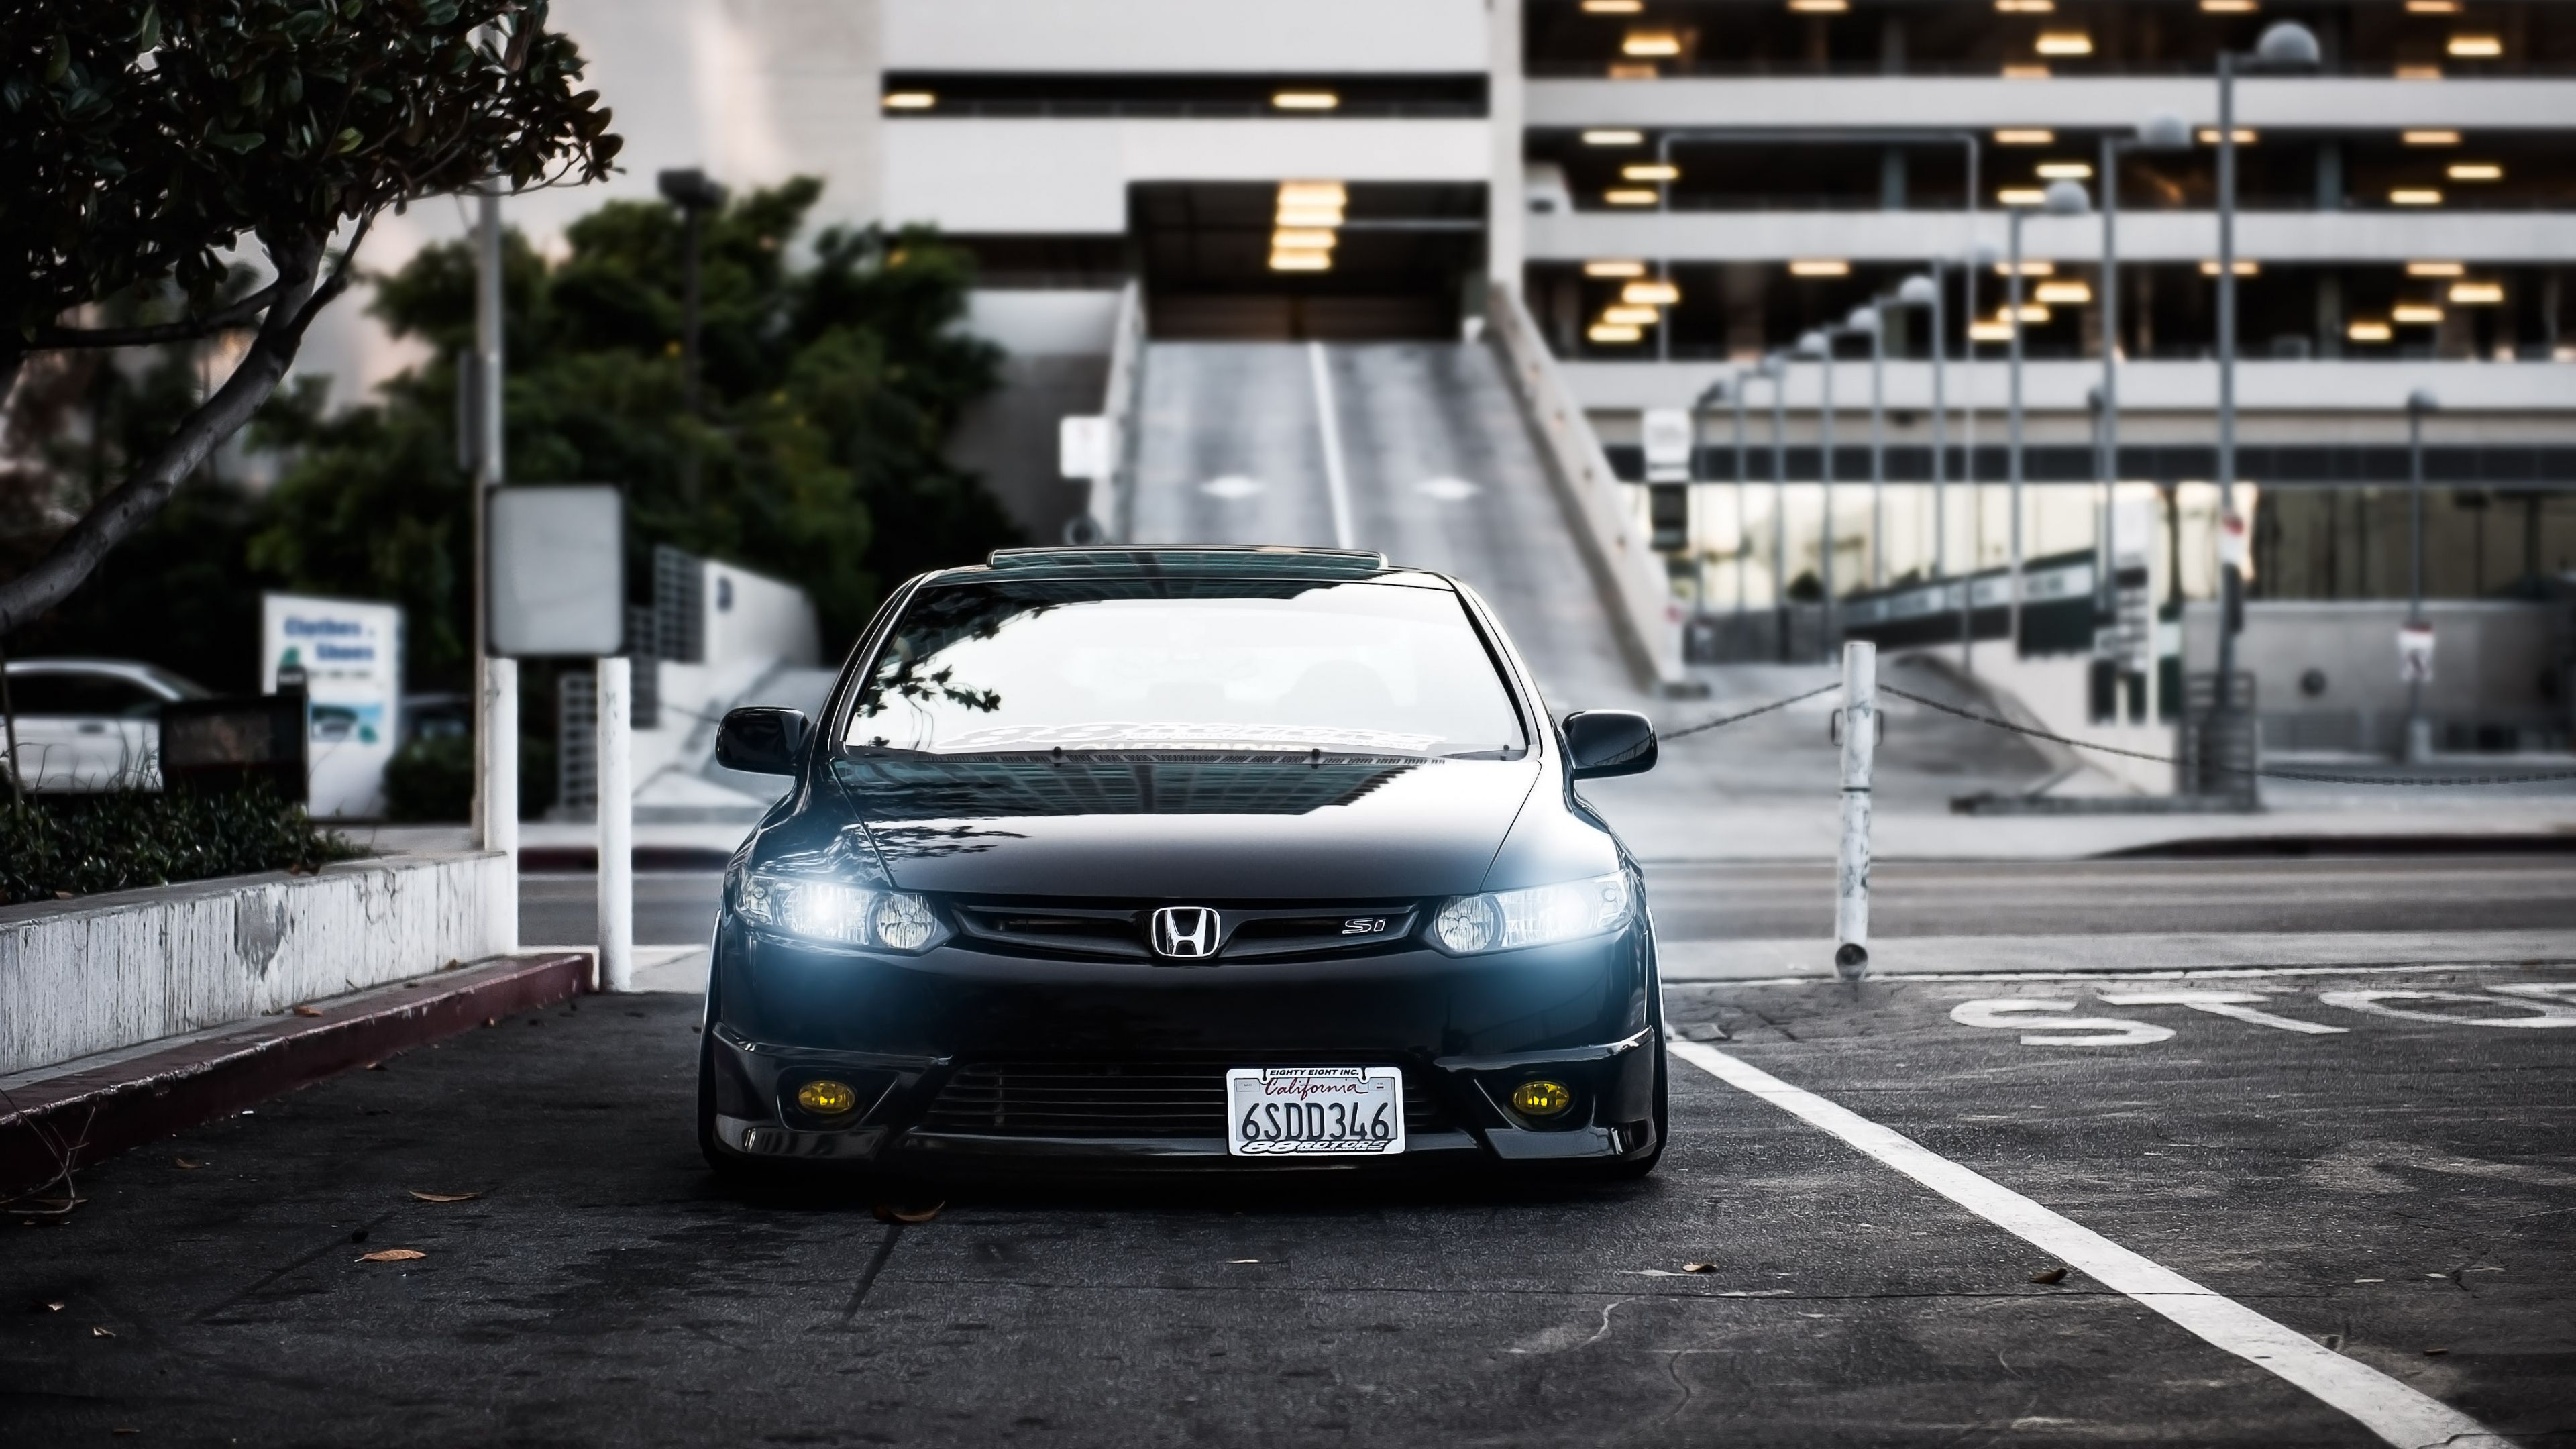 Honda Civic High Definition Wallpapers